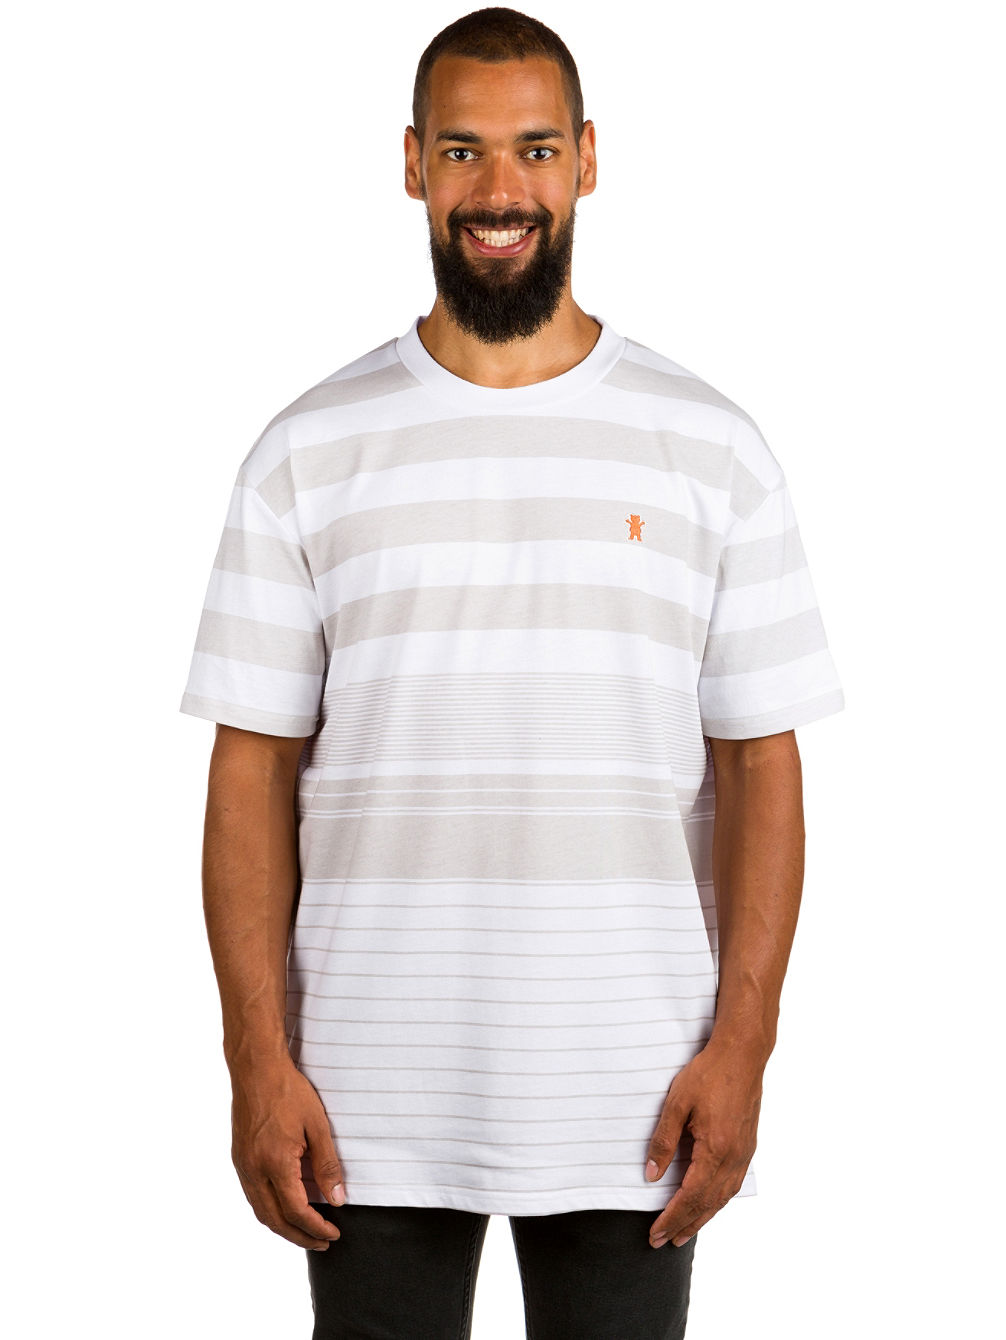 Manta Ray Striped Knit T-Shirt